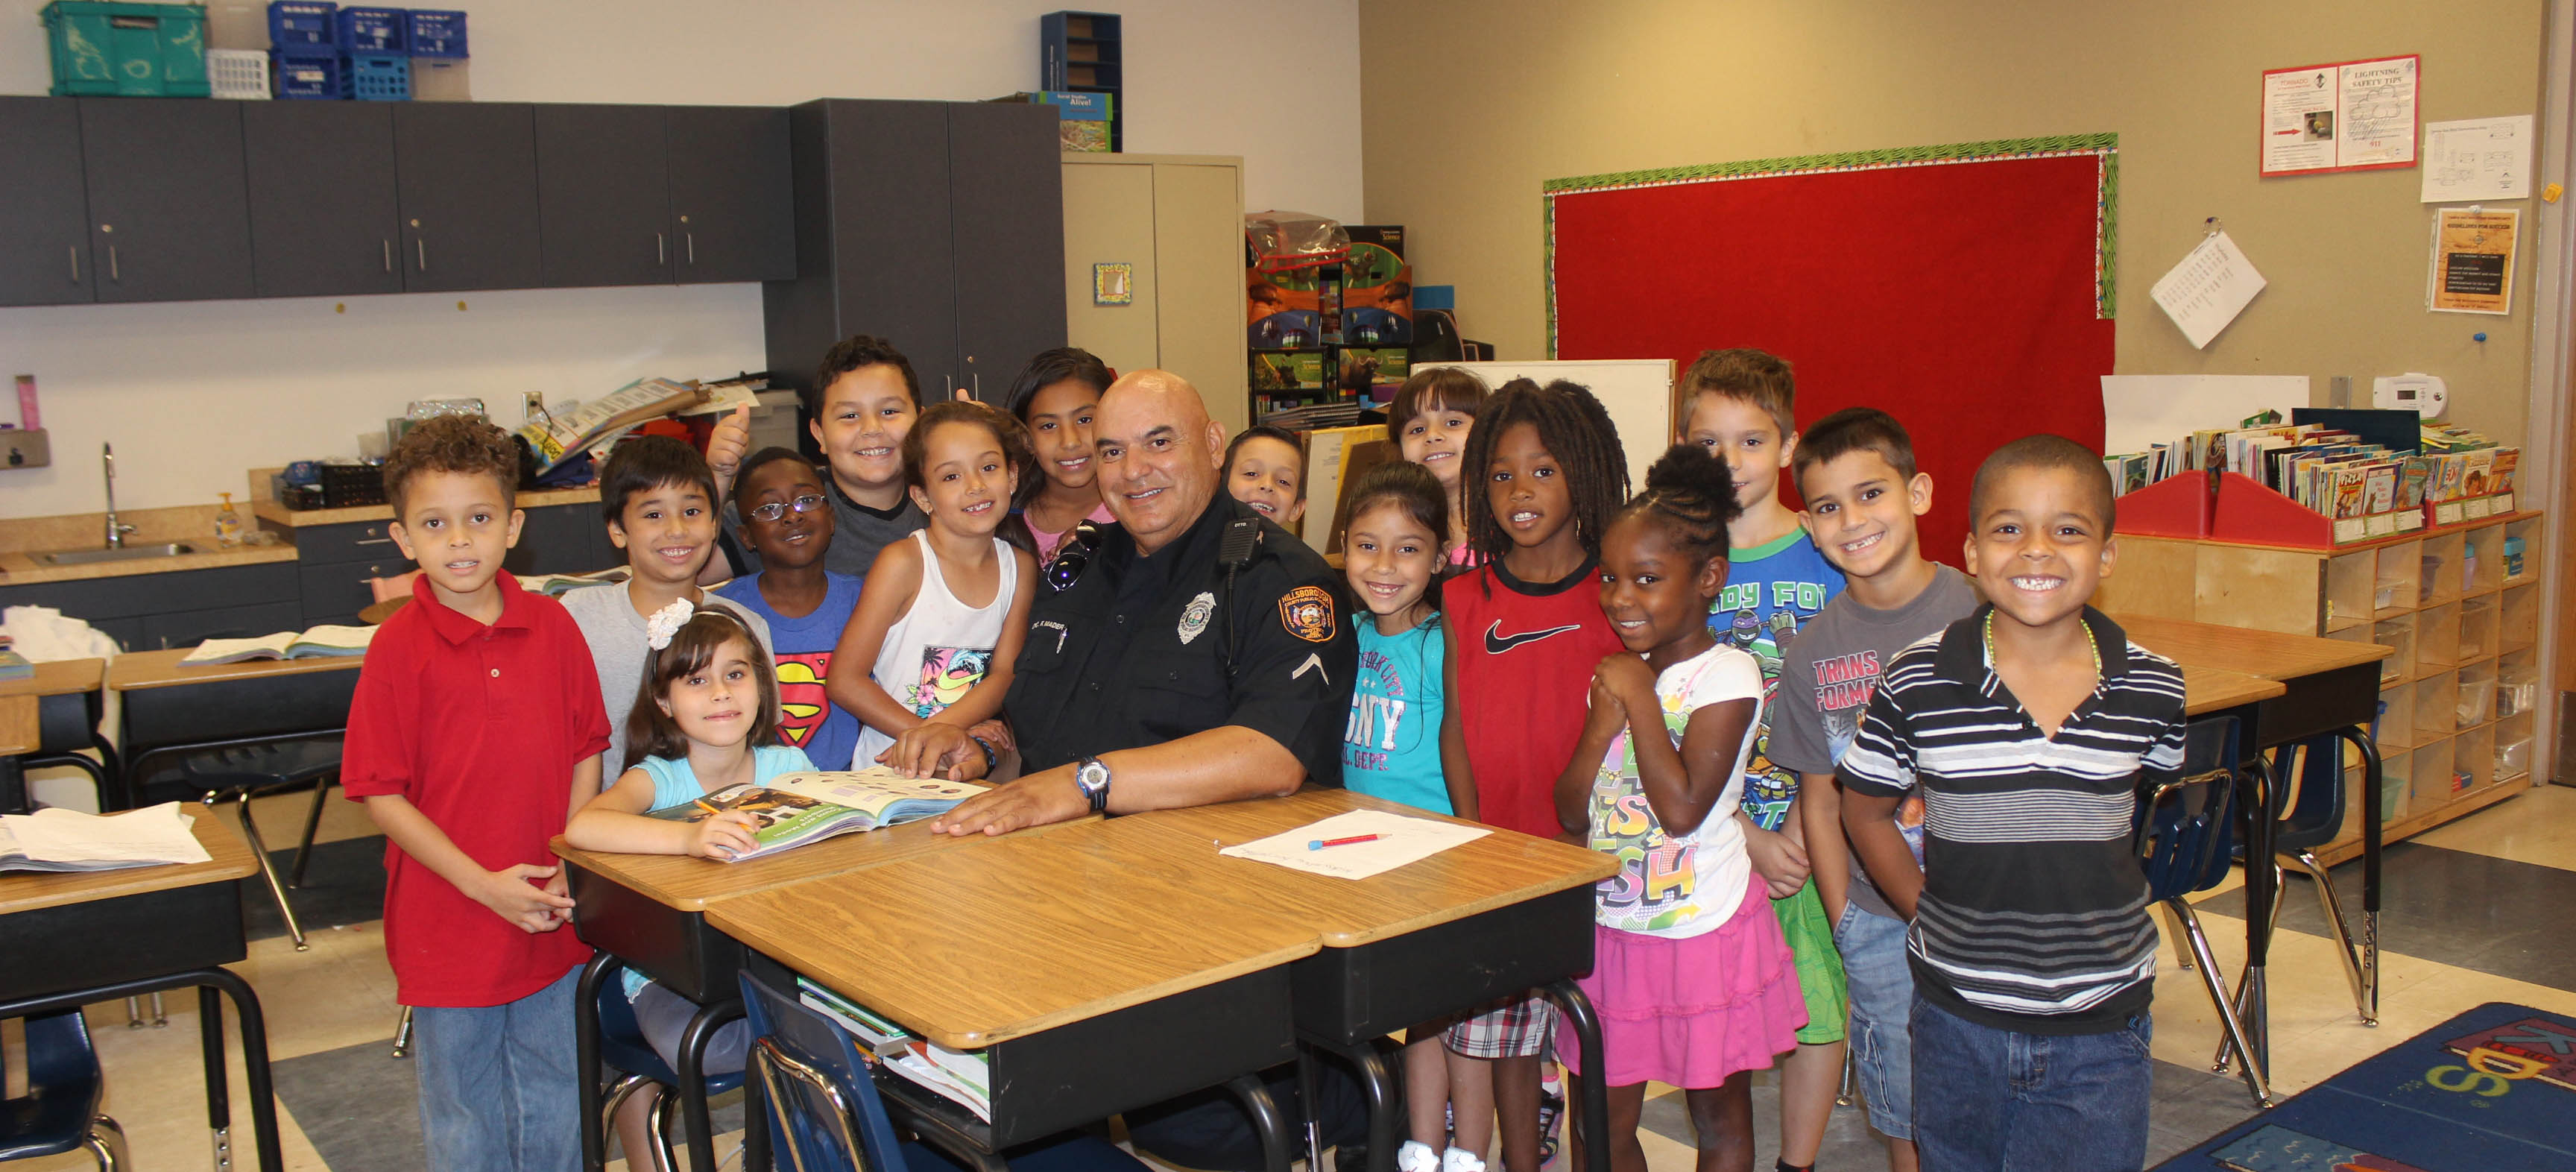 Image for School security officer is the heart of Tampa Bay Boulevard Elementary